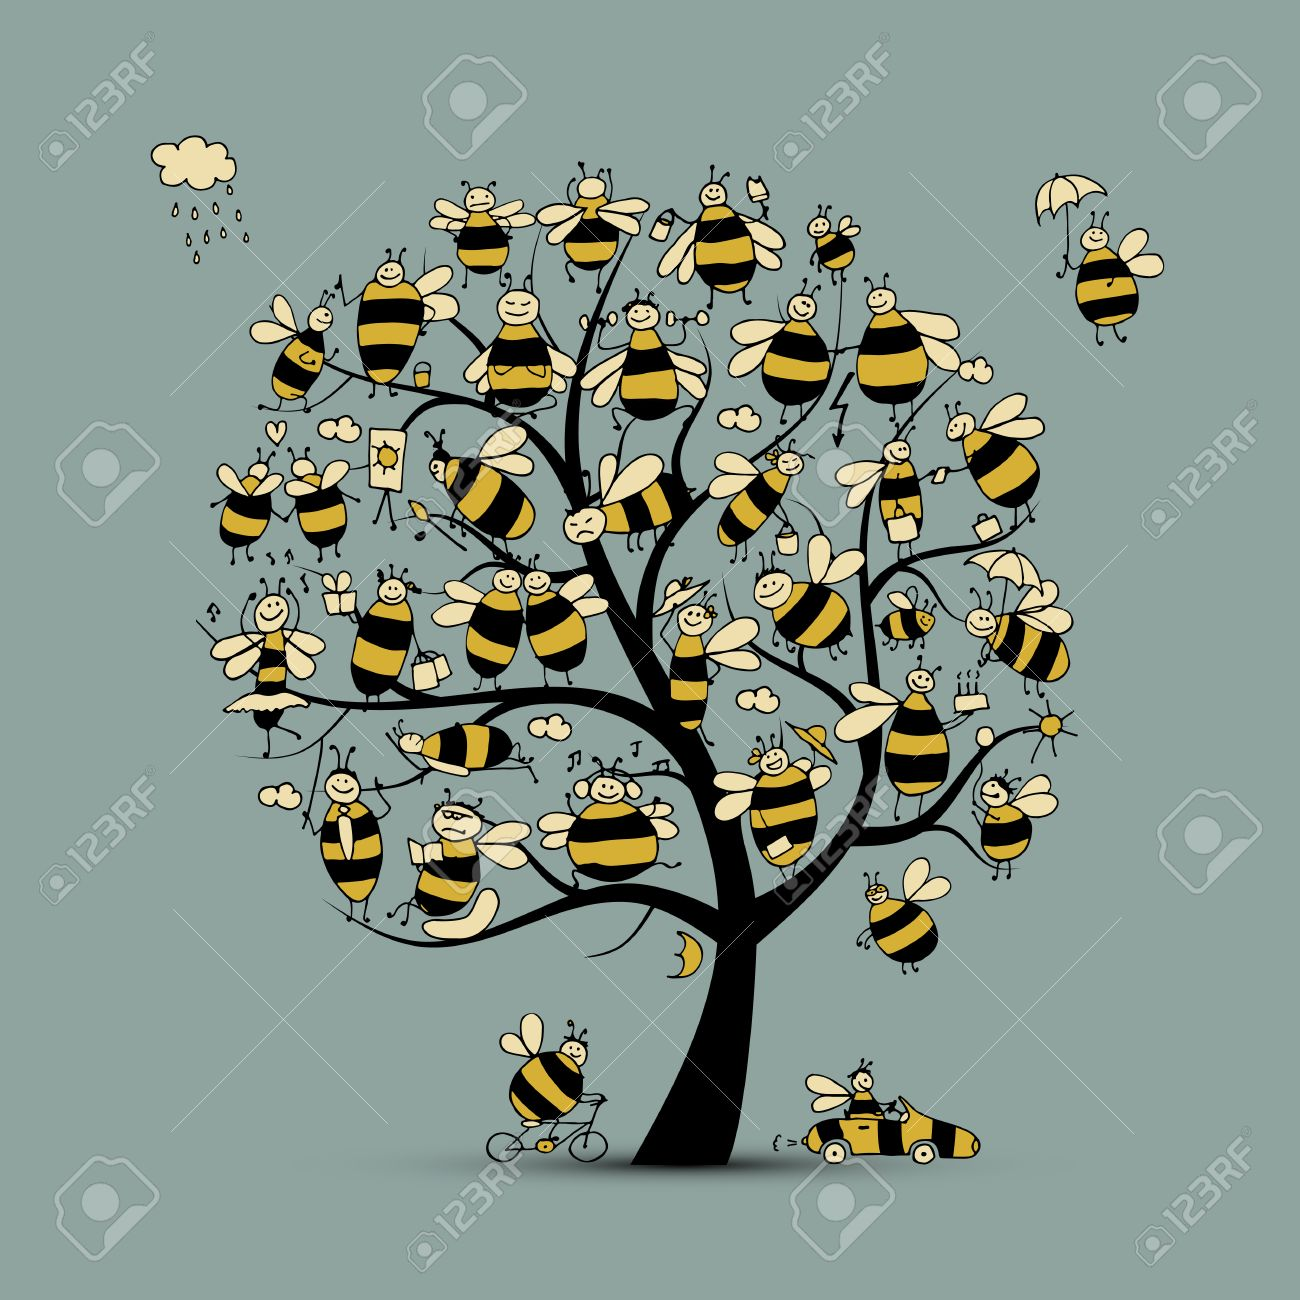 Art tree with family bees, sketch for your design. Vector illustration - 64821151